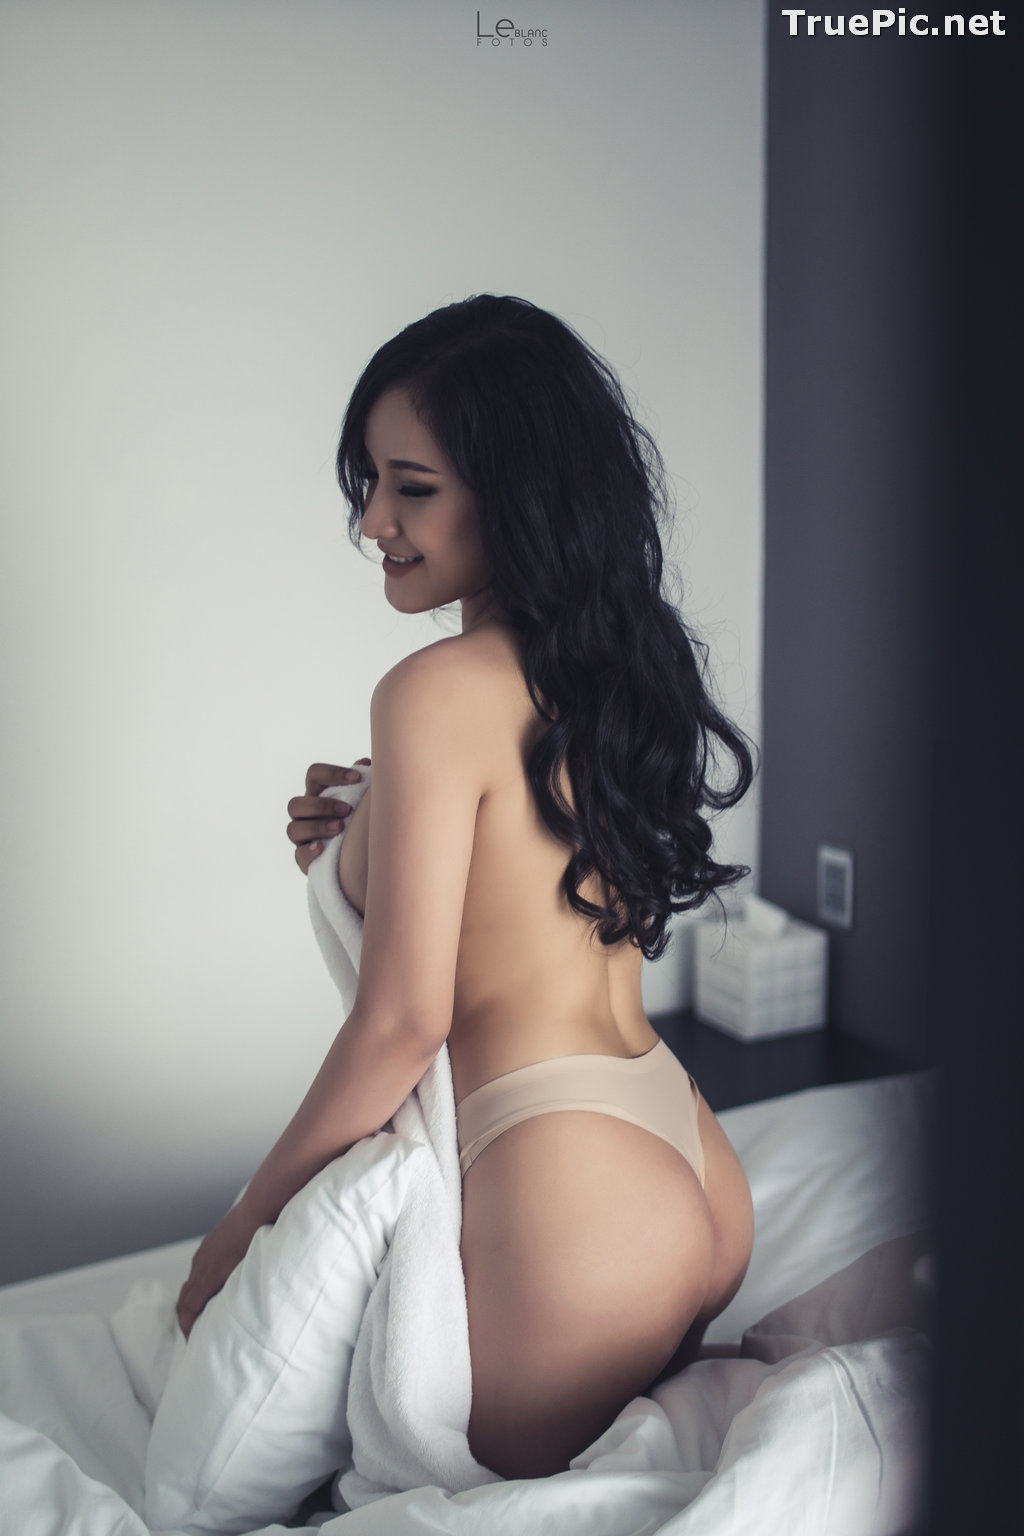 Image Vietnamese Beauties With Lingerie and Bikini – Photo by Le Blanc Studio #12 - TruePic.net - Picture-7